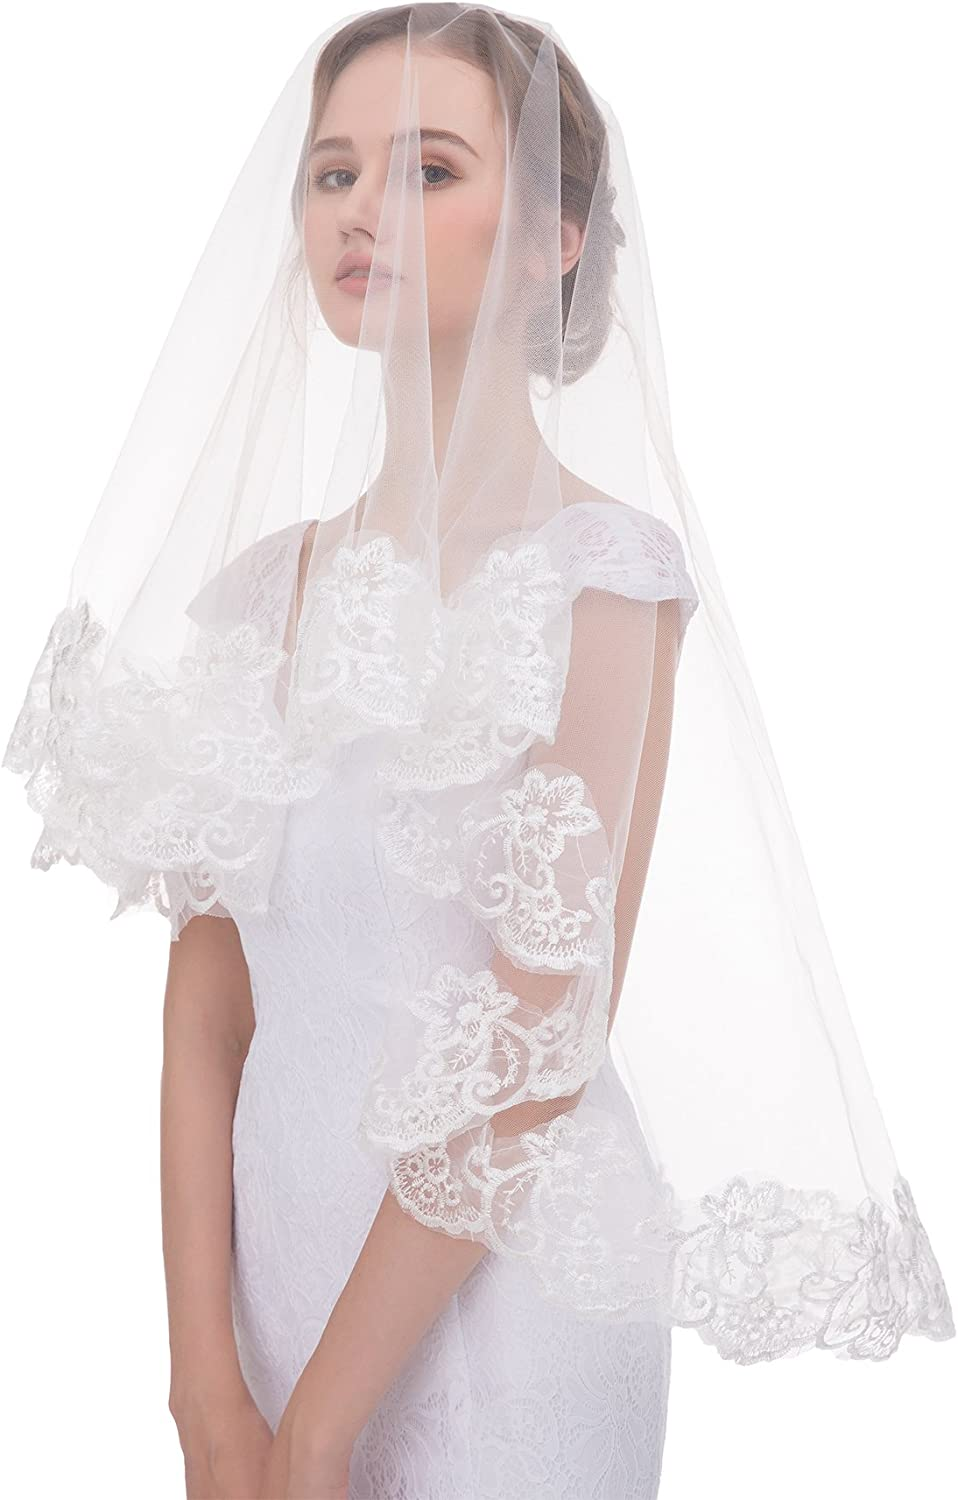 Sunny zeyu One Layer Fingertip Lace Edge Tulle Veils Comb Wedding Accessories